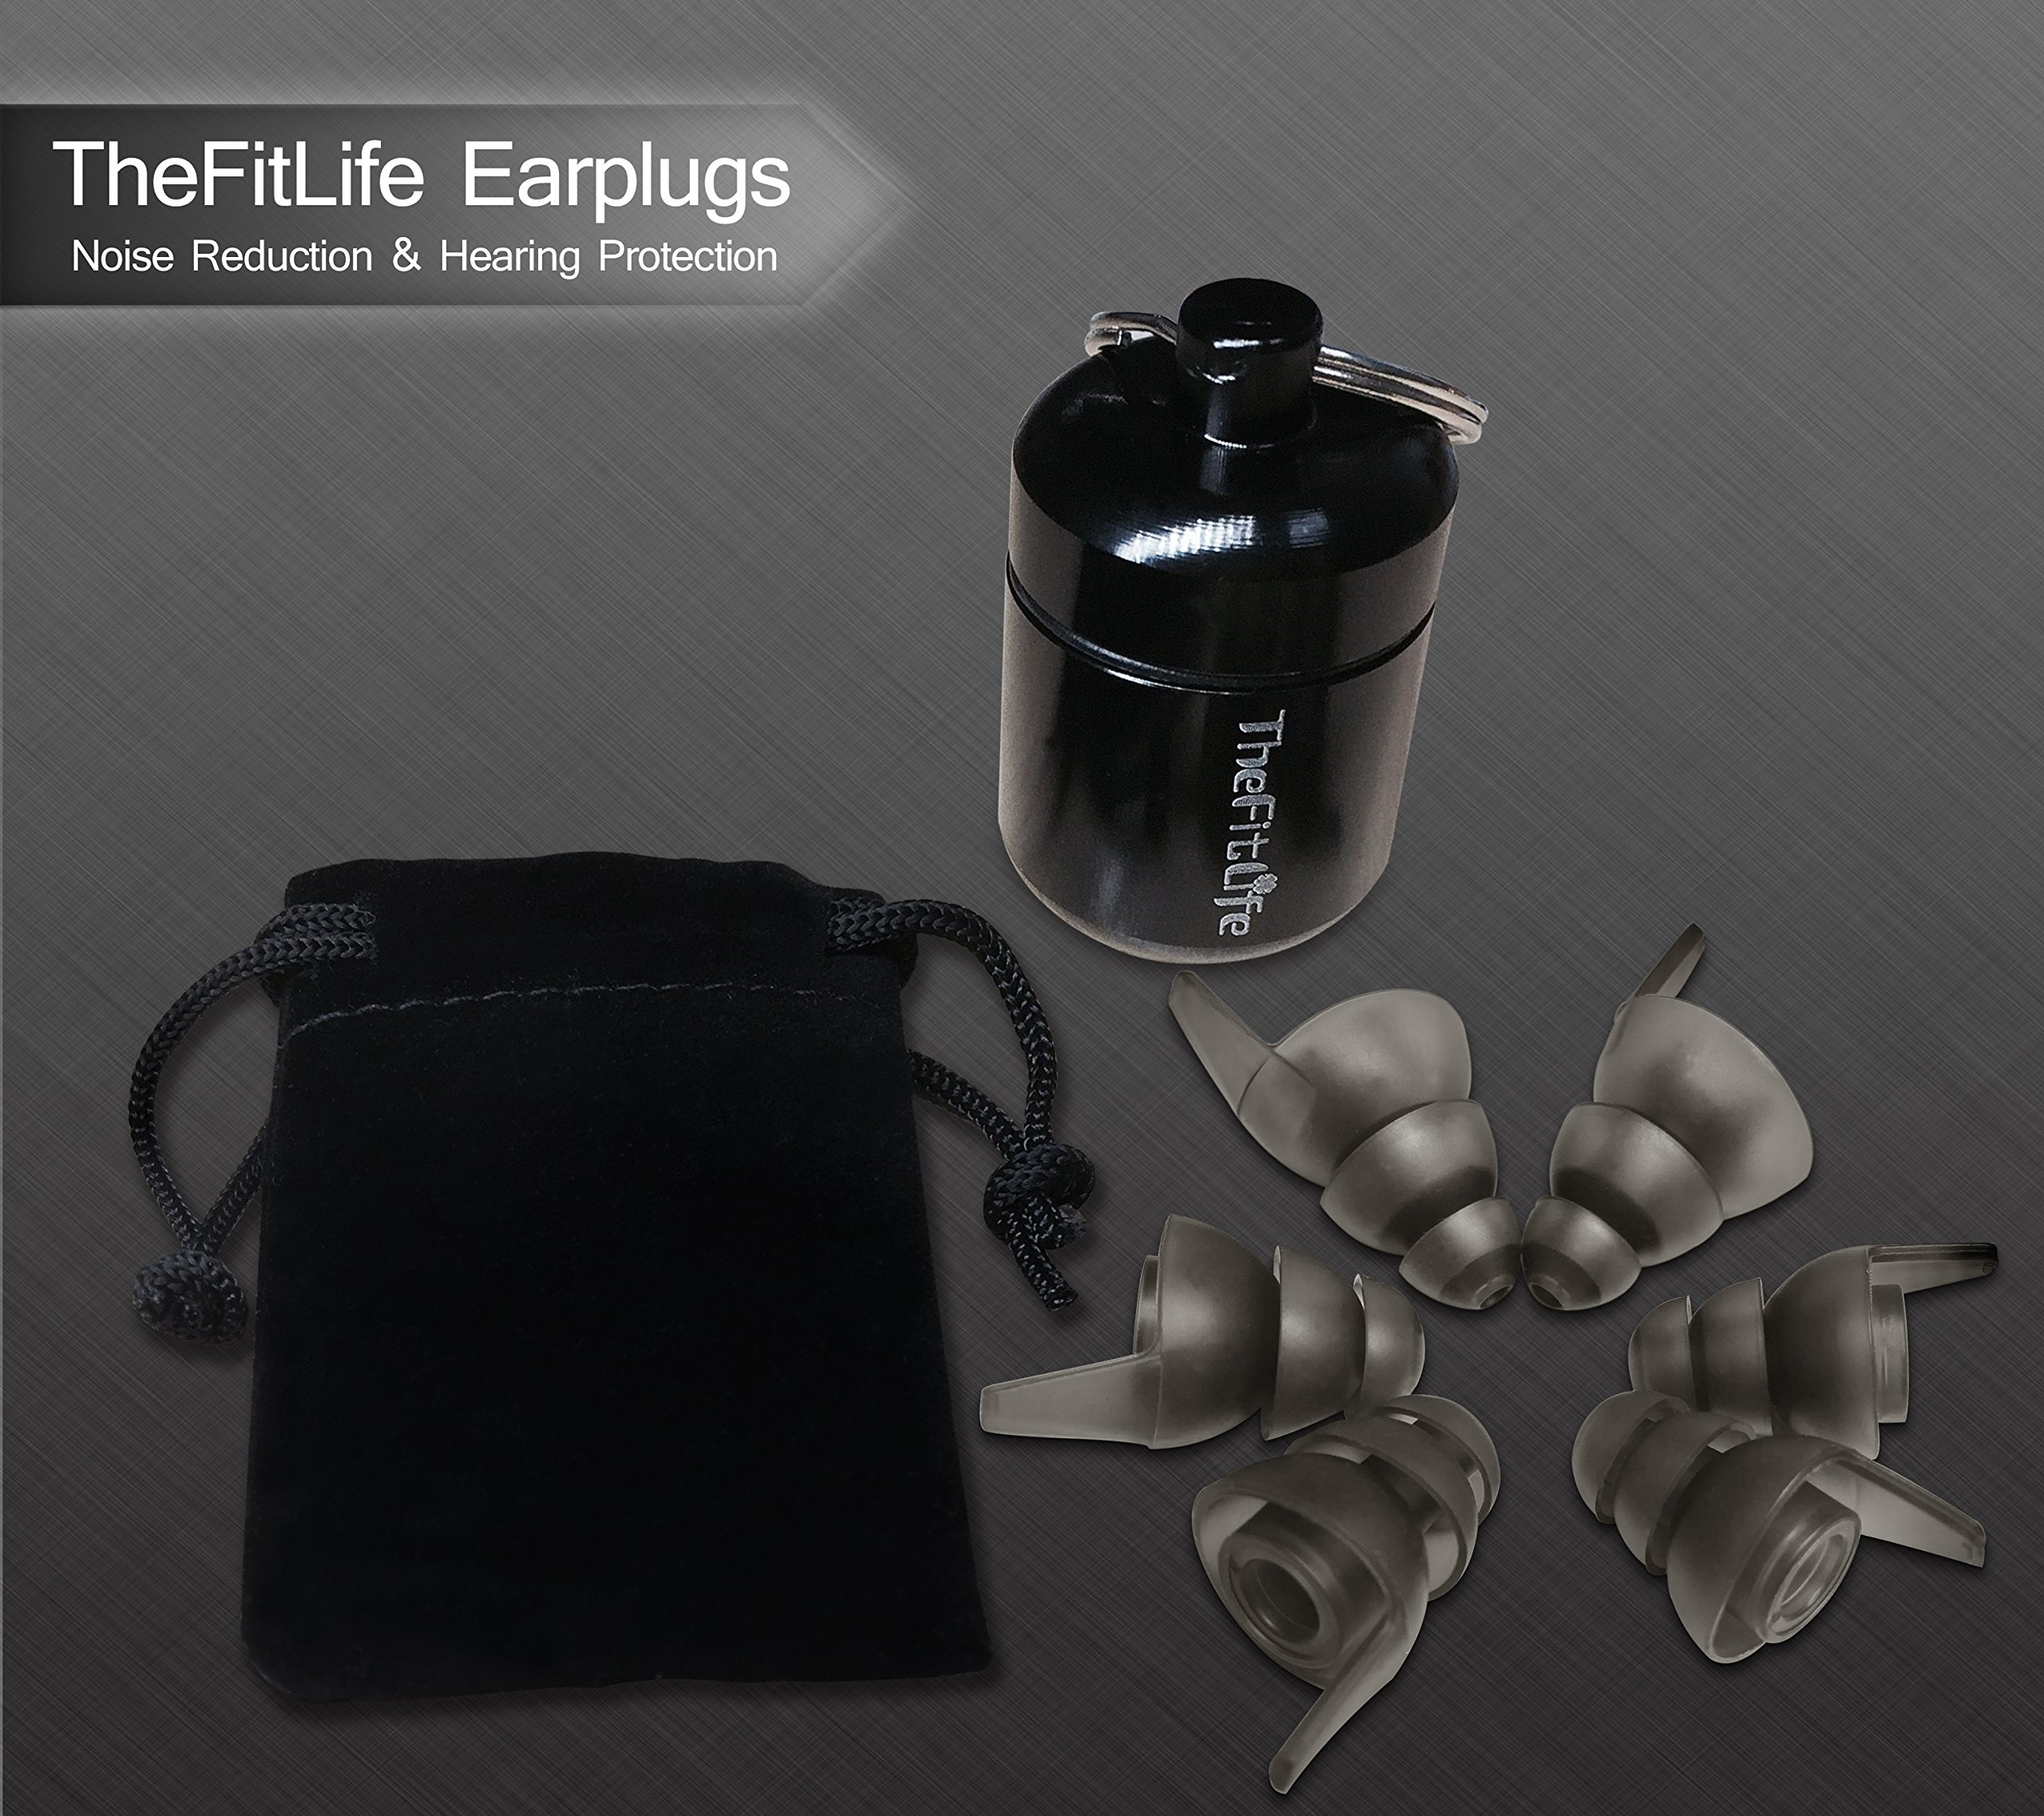 TheFitLife Noise Reduction Ear Plugs - Ultra Comfortable and Reusable Silicone High Fidelity Earplugs with 23dB SNR for Musicians Concerts Motorcycle Shooting 3 Sizes Fit for Kids Men Women (Black) by TheFitLife (Image #5)